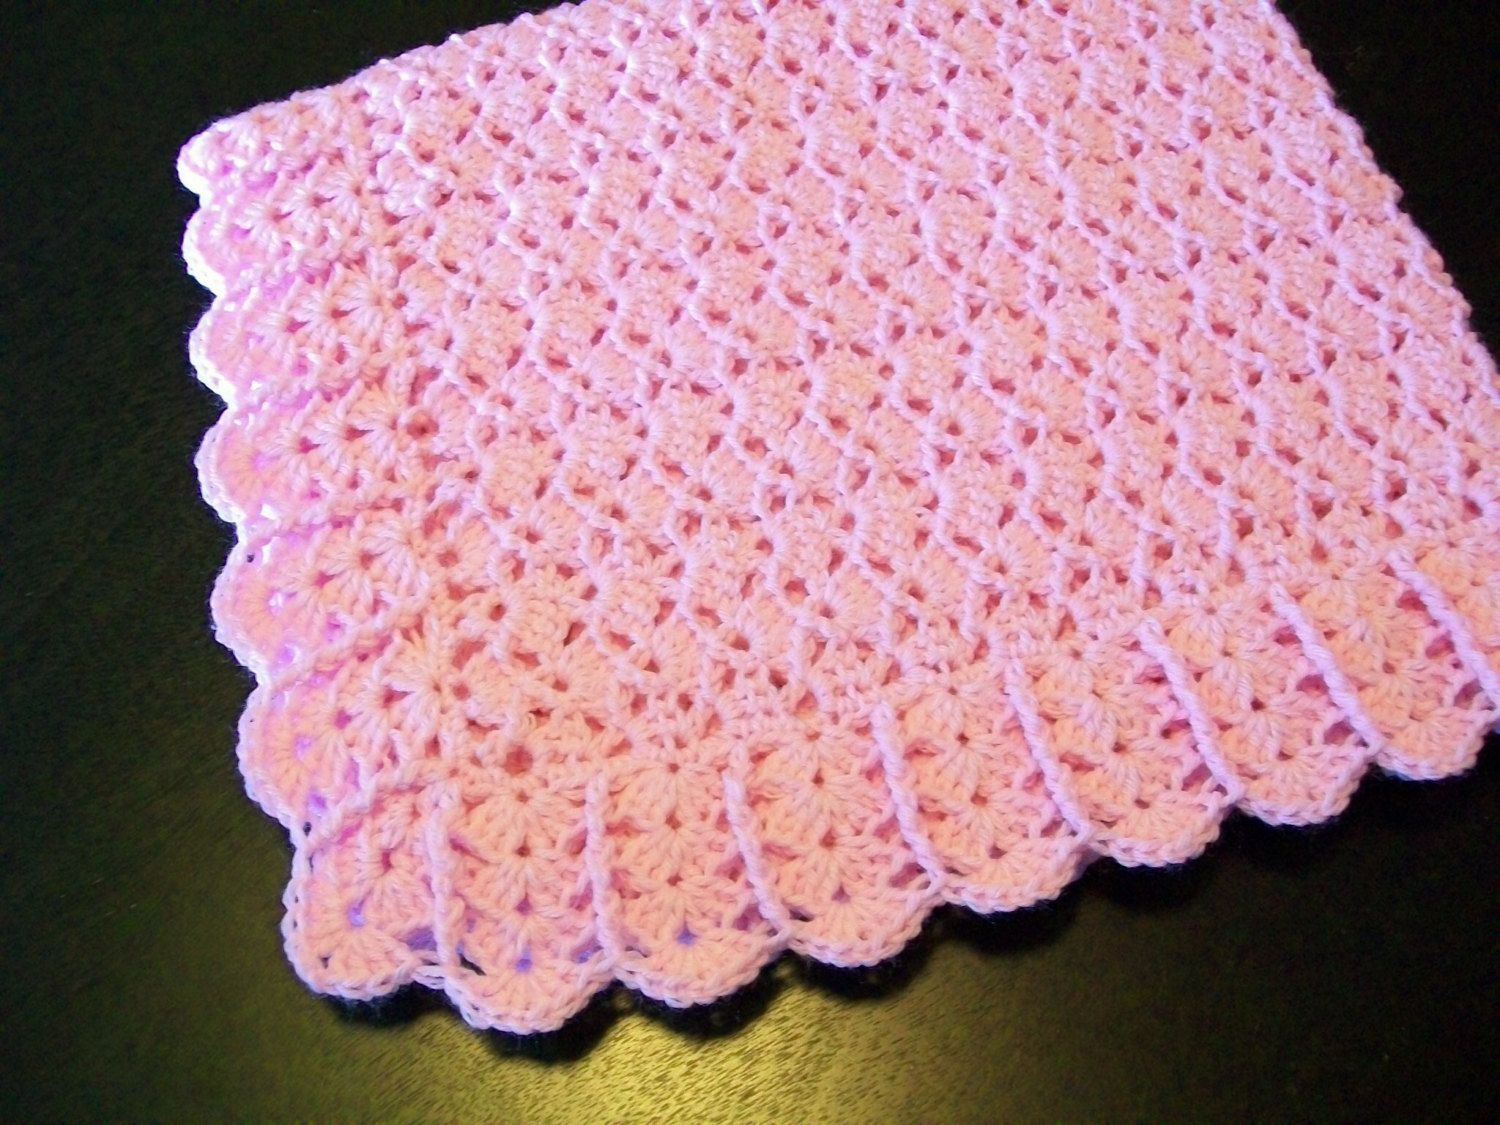 Crochet patterns for blankets crochet pinterest blanket baby afghan crochet bankloansurffo Gallery